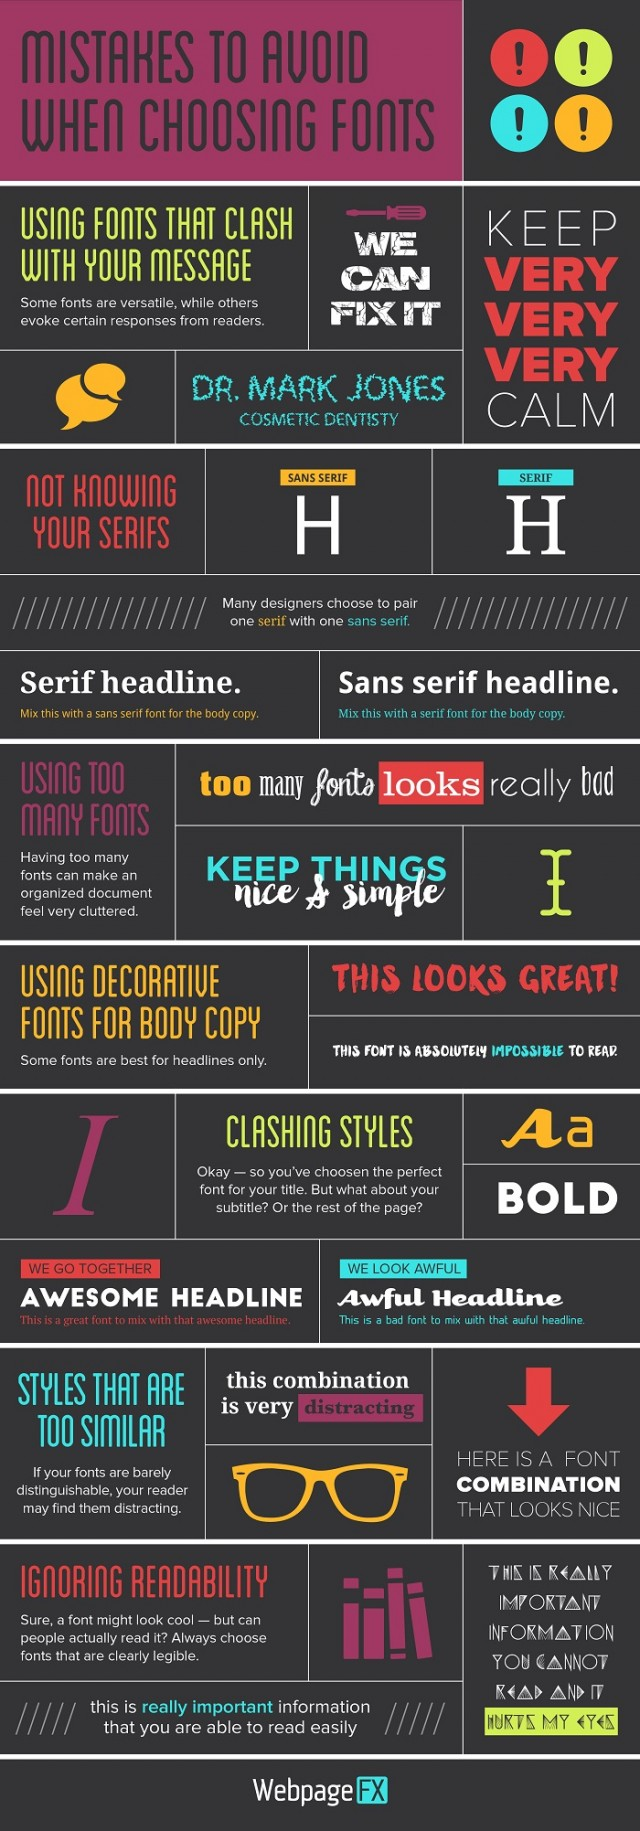 Mistakes Choosing Fonts Infographic